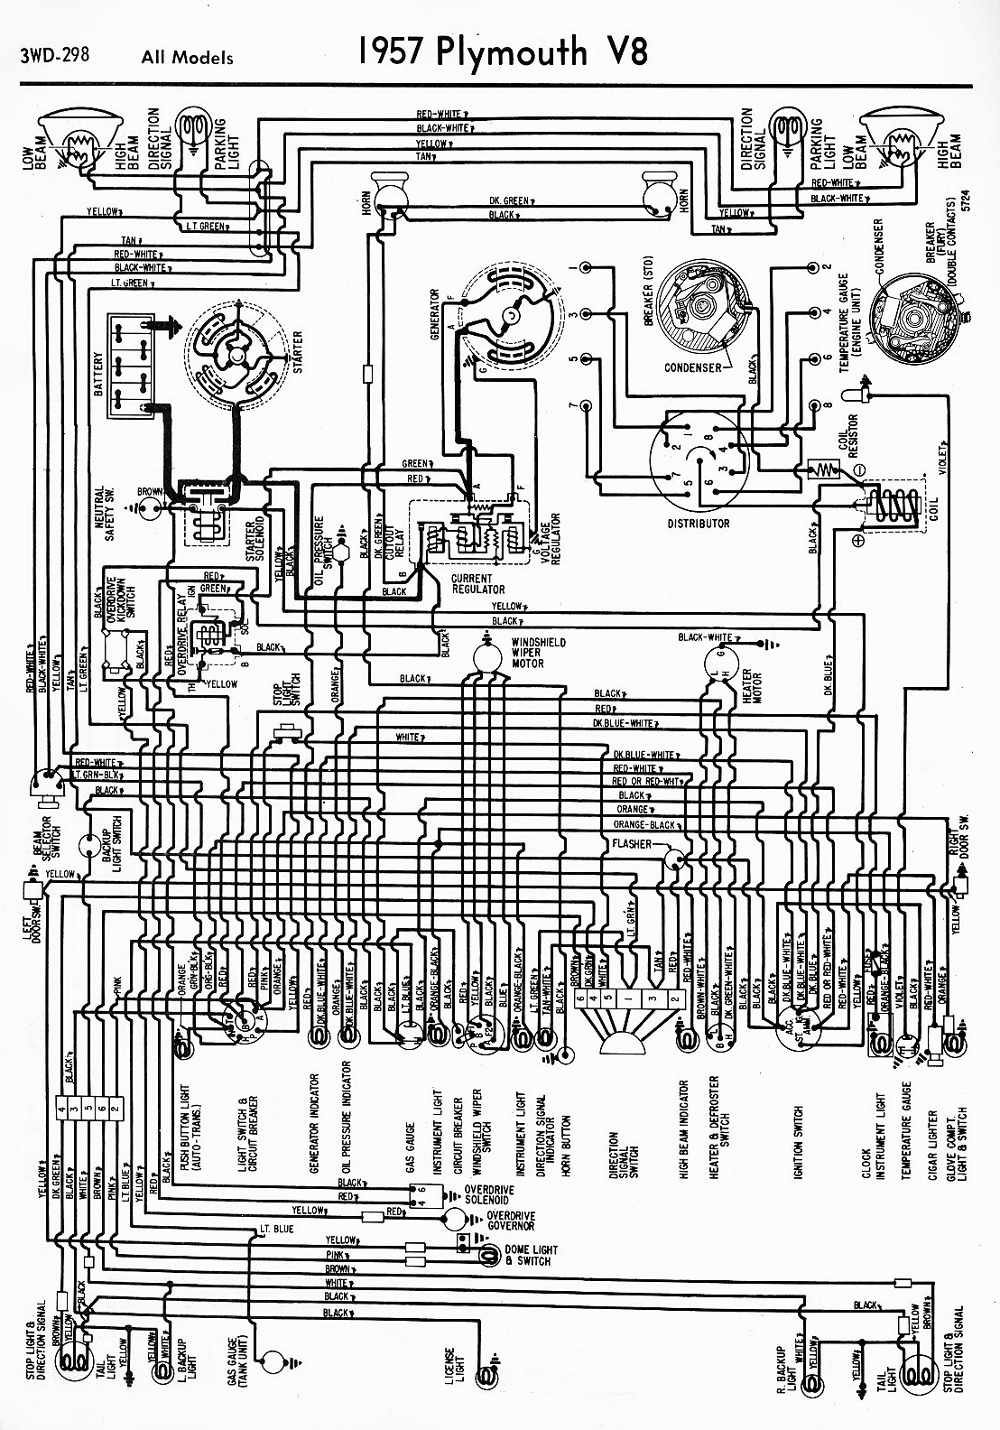 wiring diagrams 911 2011 1957 plymouth v8 all models wiring diagram